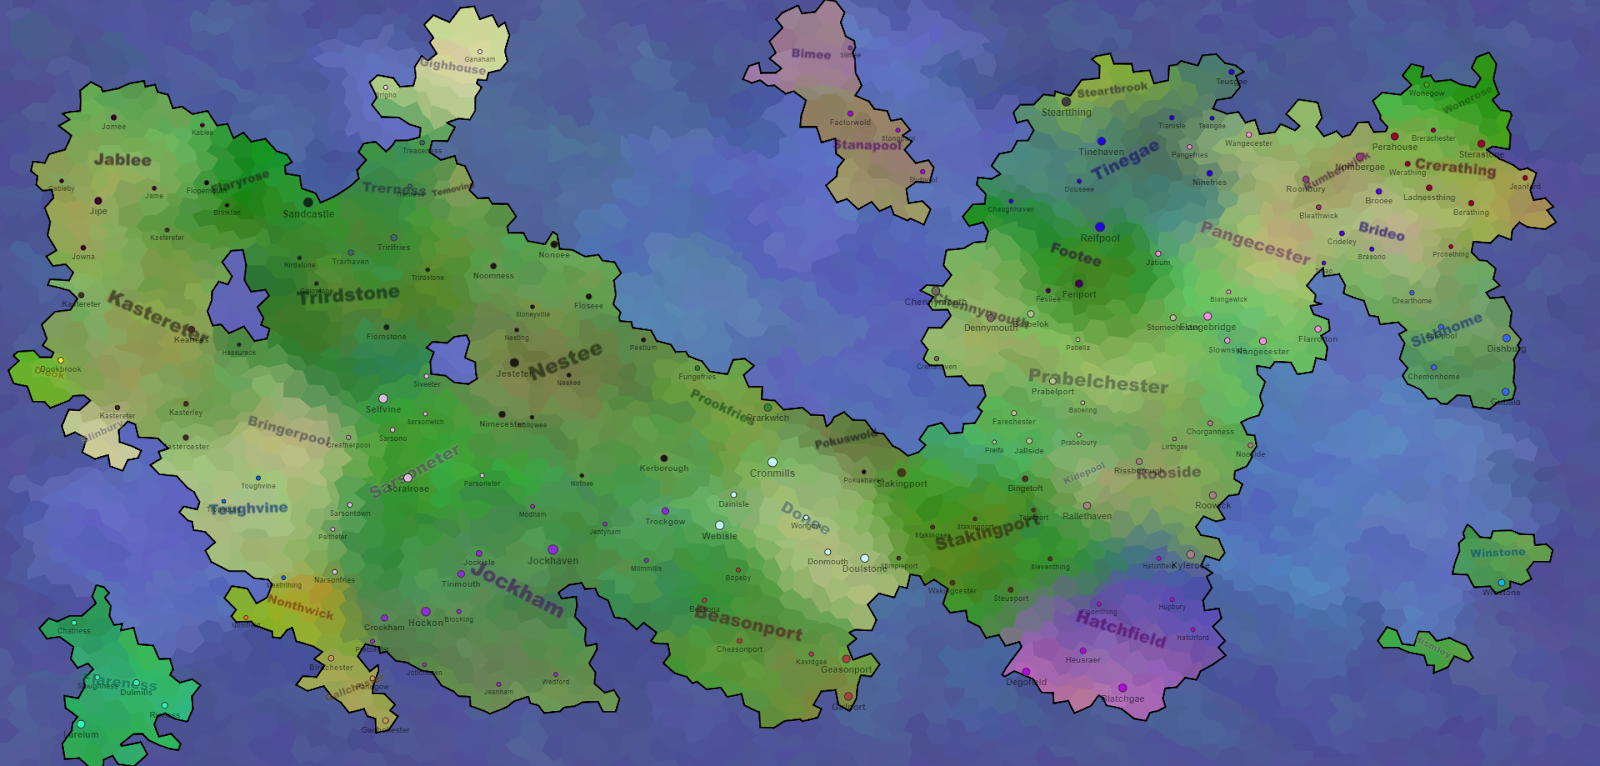 Continents, States, Towns, Tiles